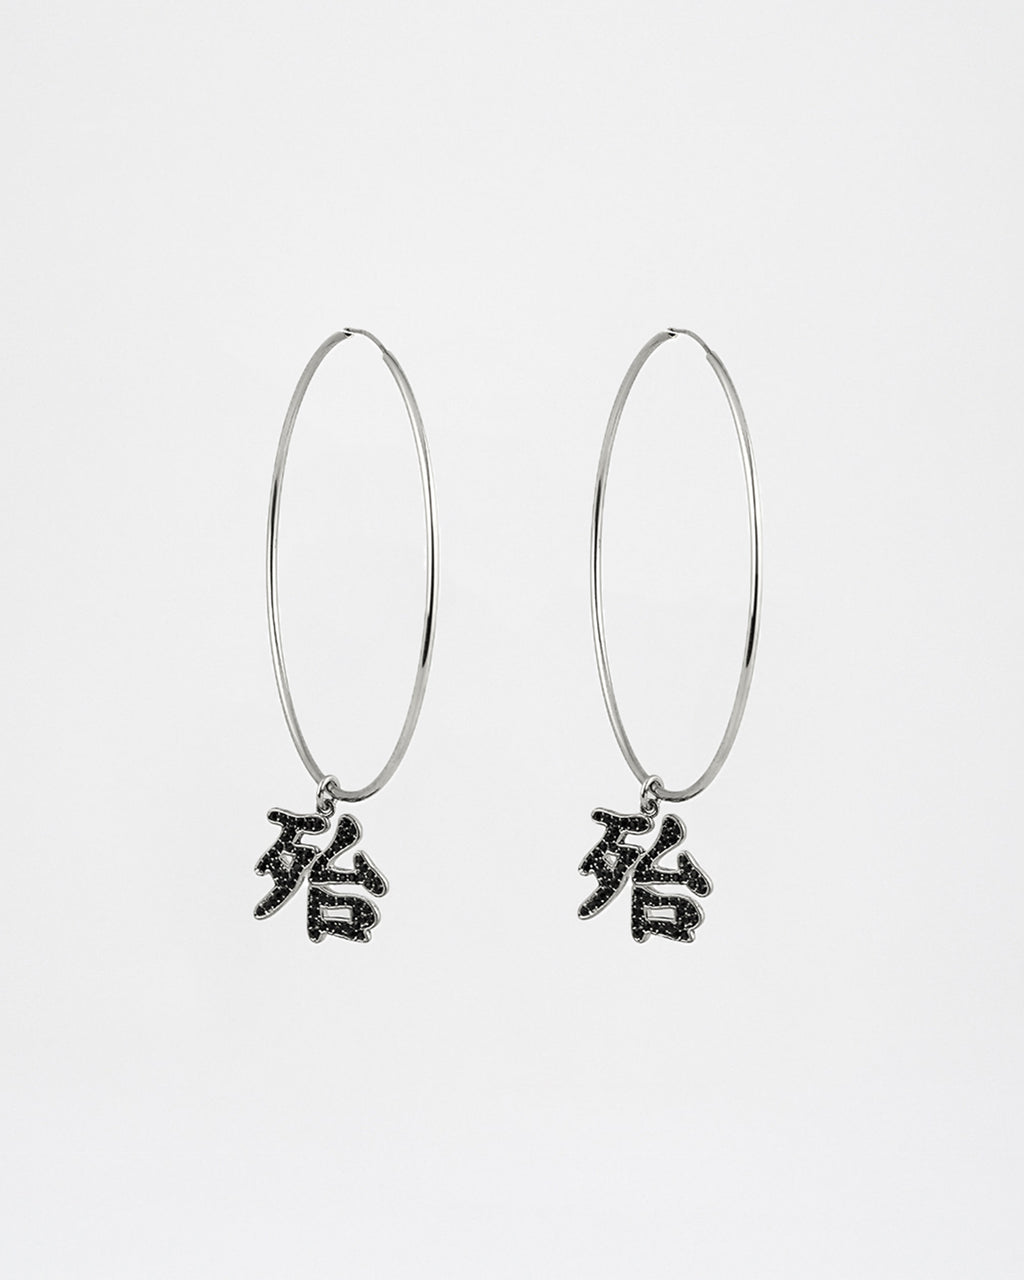 NM01391 - DANGEROUS HOOP EARRINGS - accessories - jewelry - THESE HOOP EARRINGS FEATURE THE CHINESE CHARACTER MEANING DANGEROUS. THE DANGER CHARACTER HAS BLACK CYRSTALS.